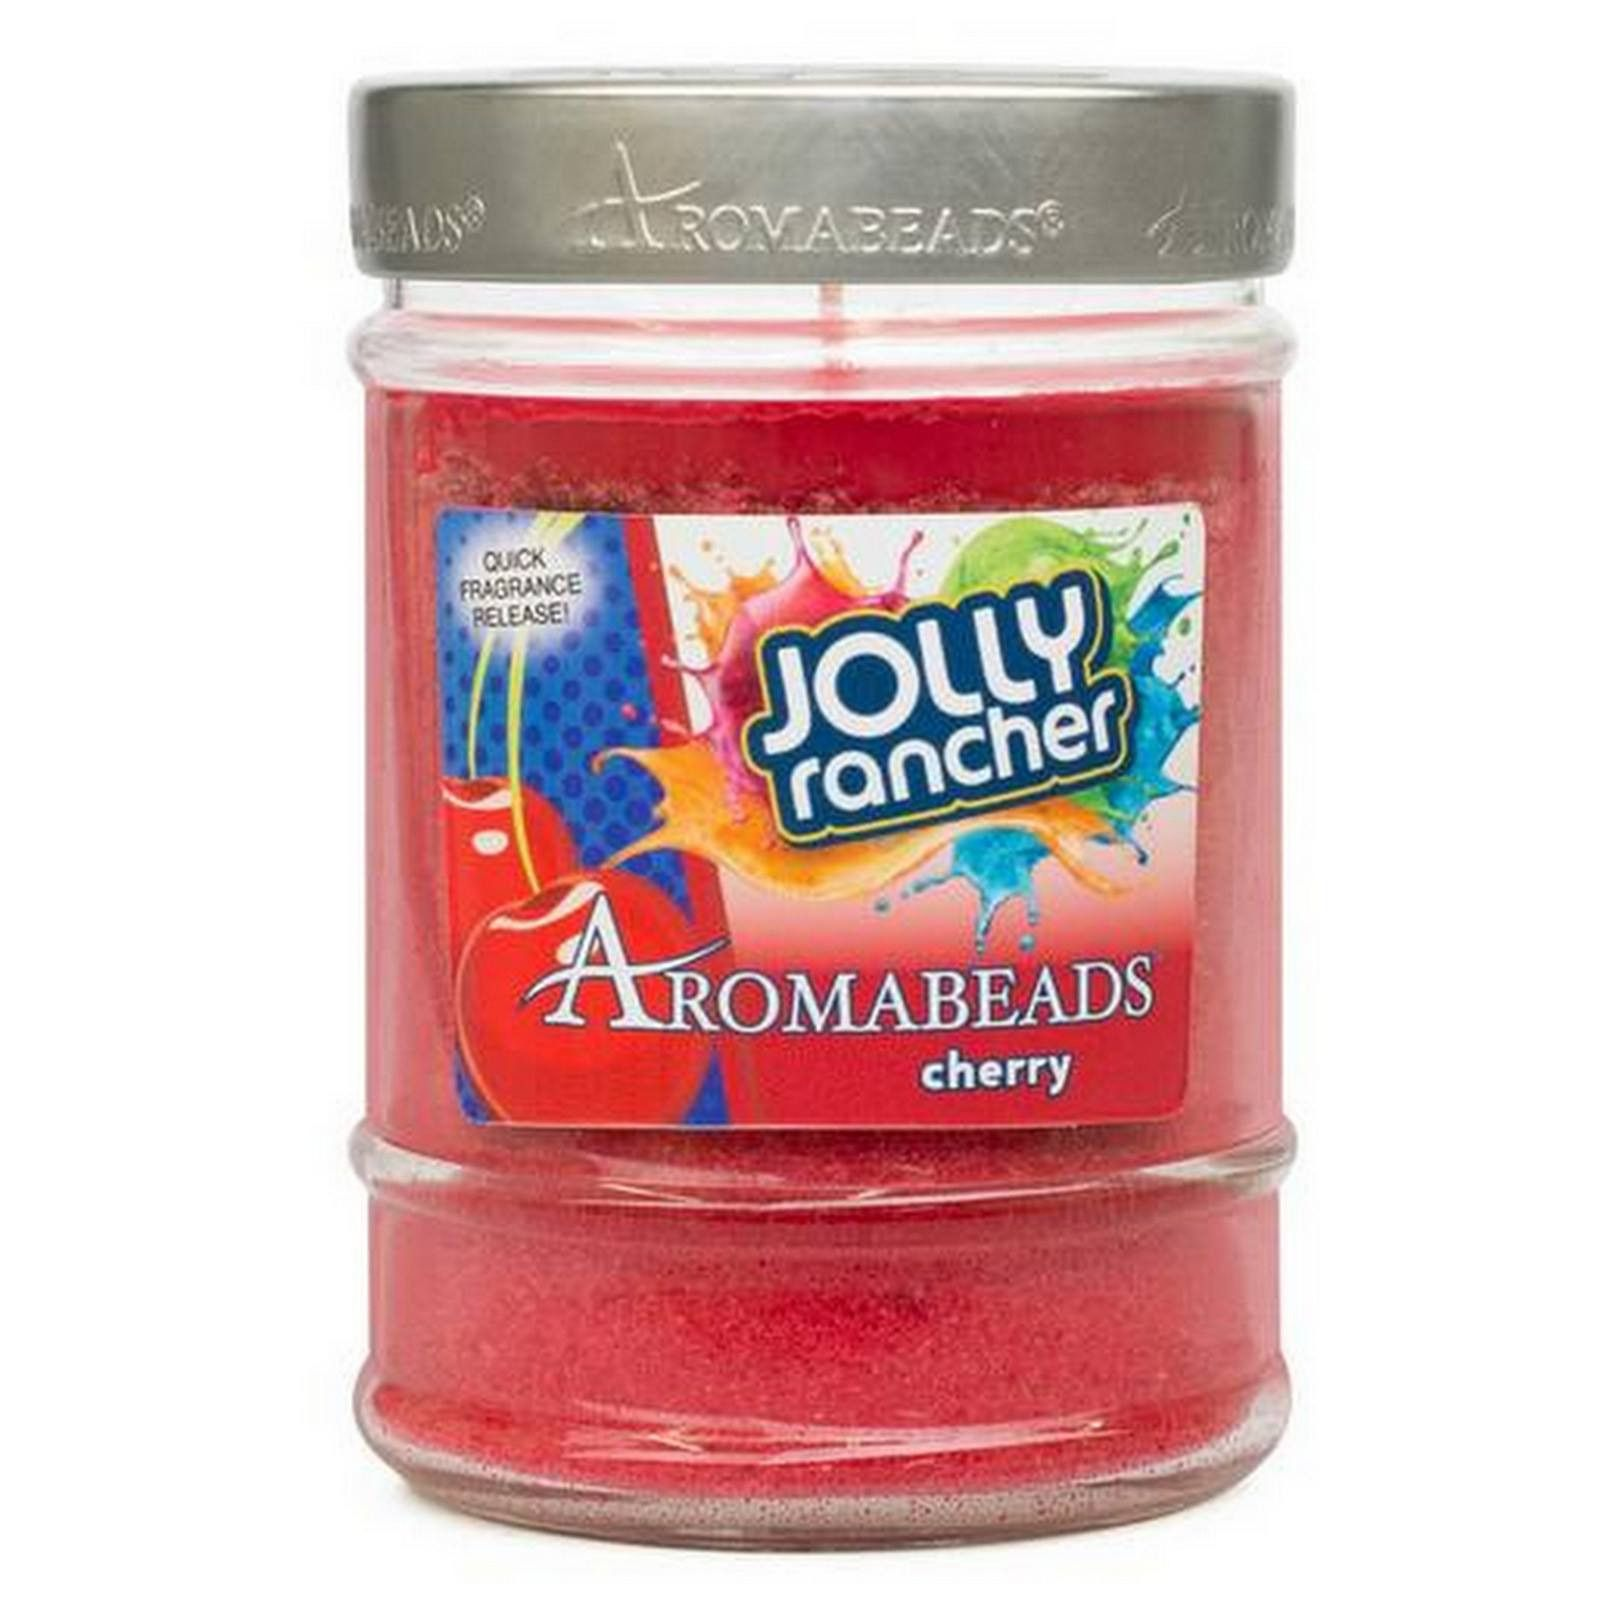 Jolly Rancher Cherry Scented Canister Jar Candle Jolly Rancher